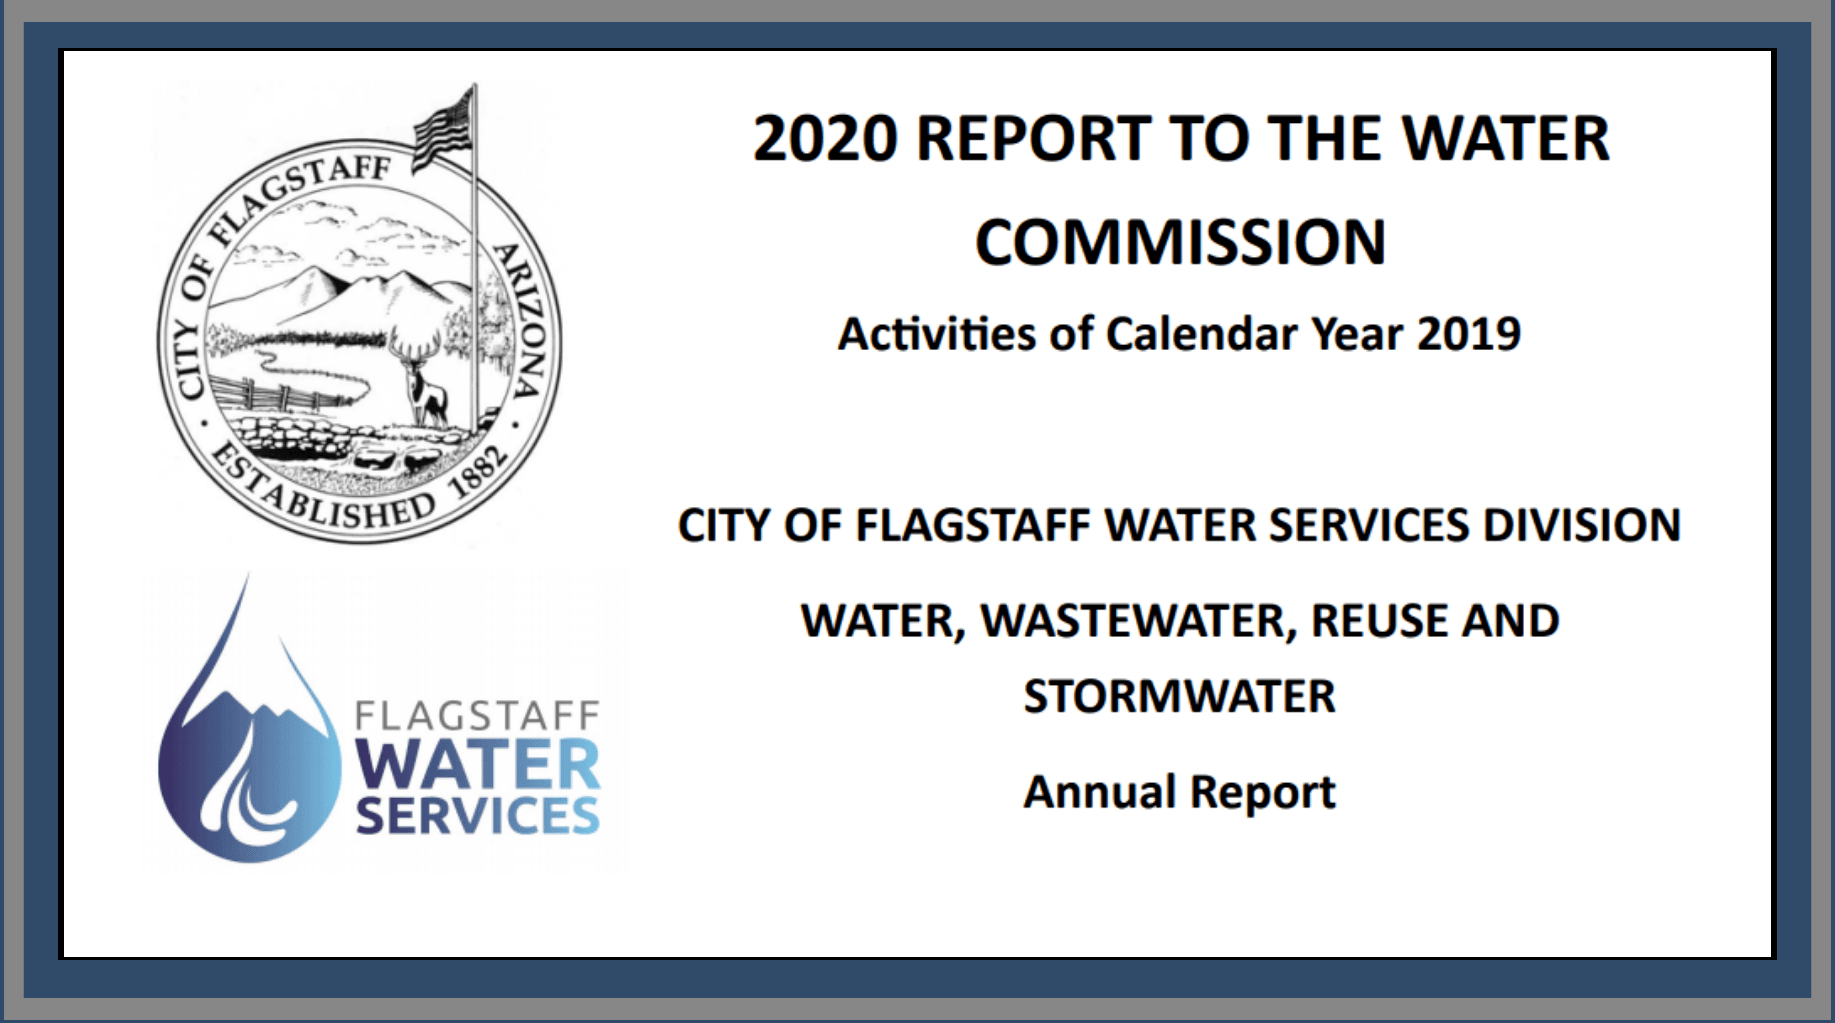 2020 Report to the Water Commission